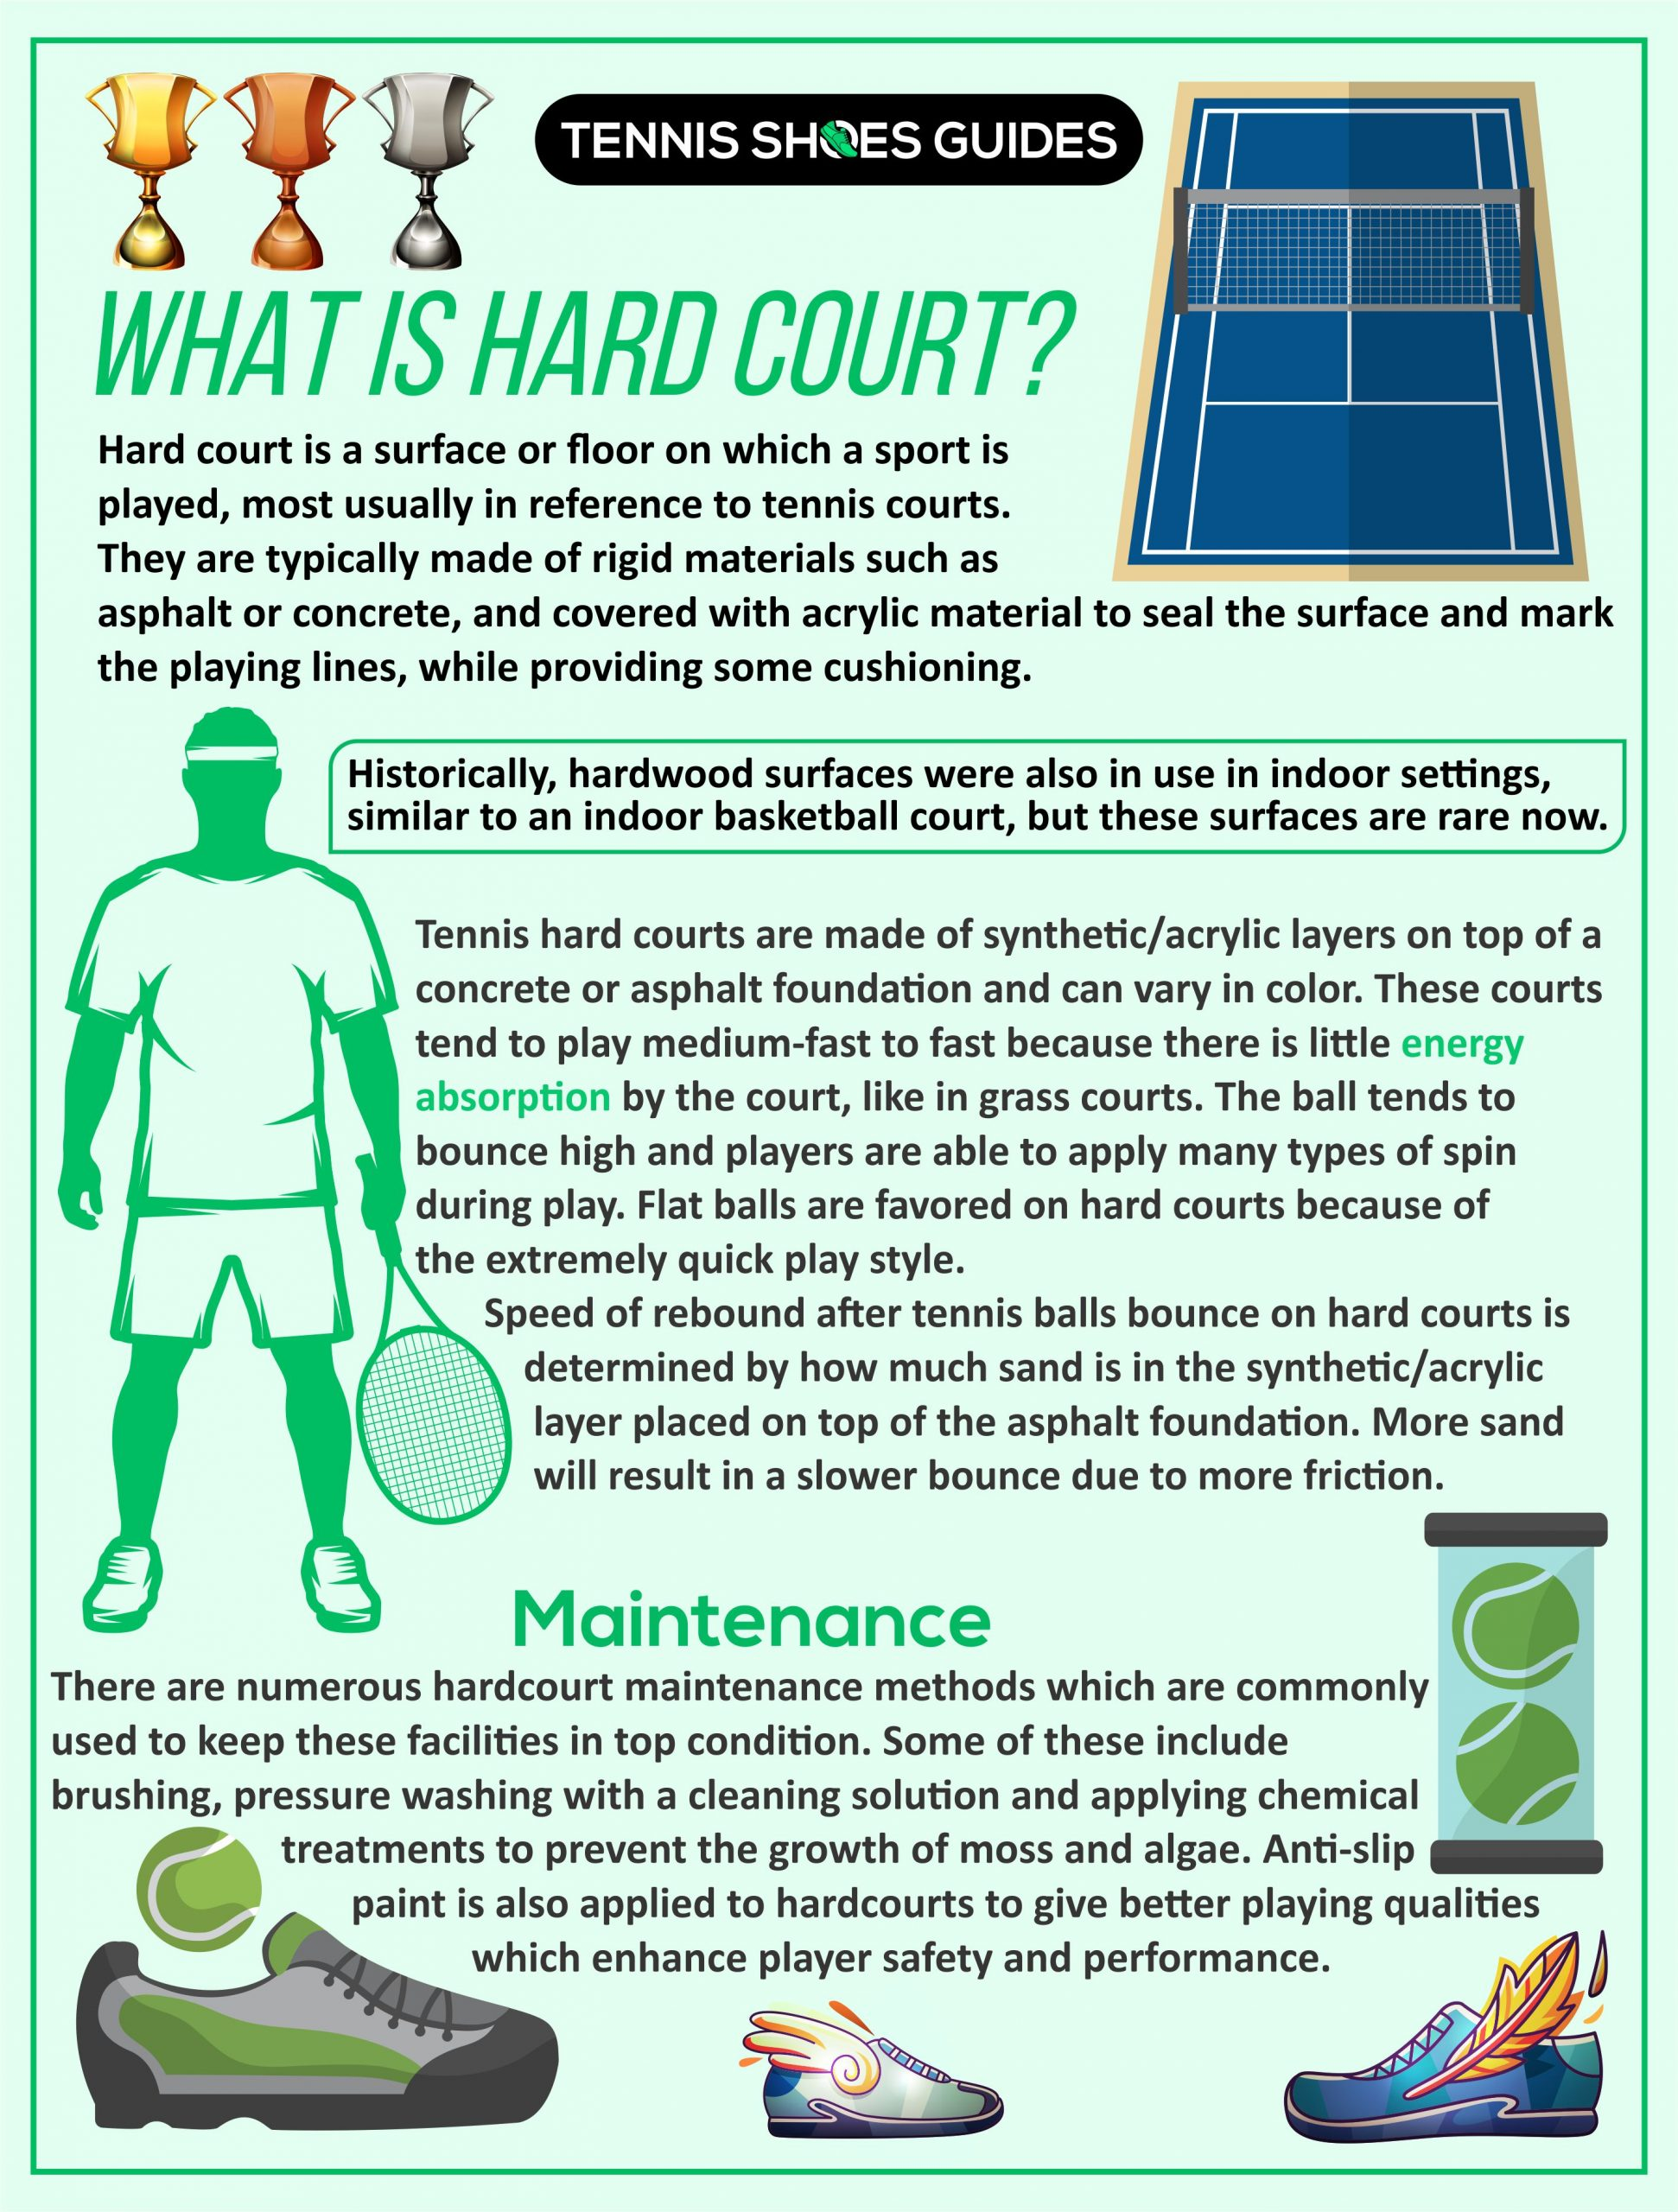 What is hard court